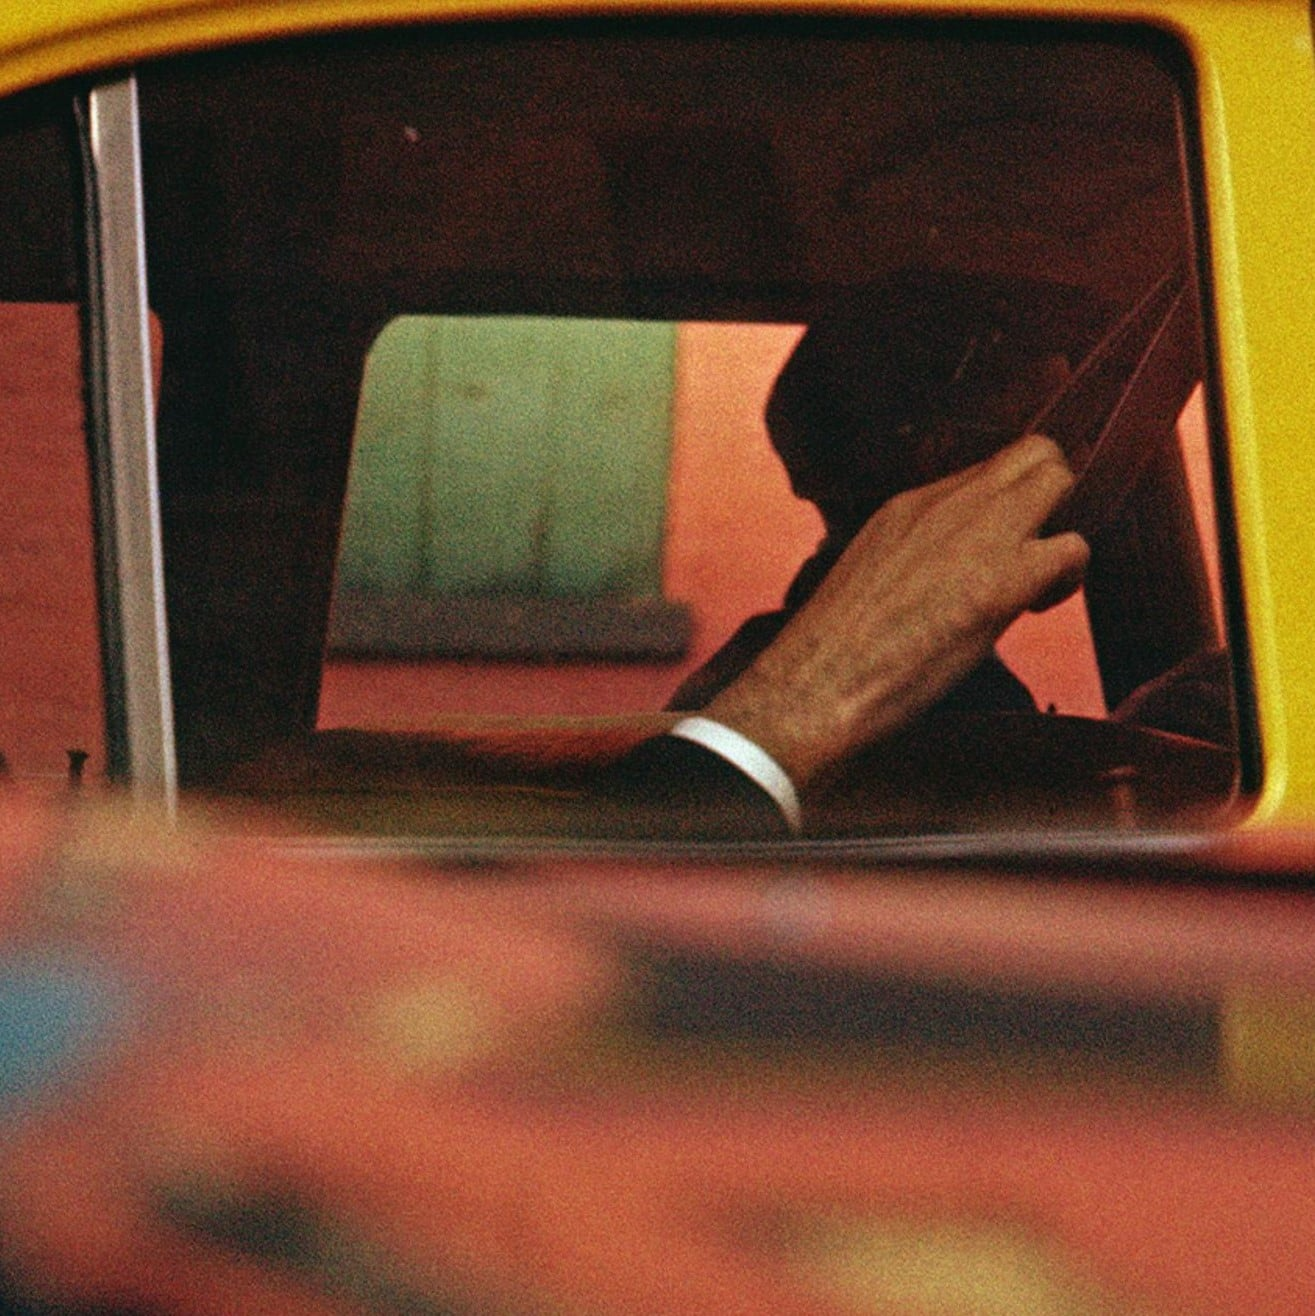 saul leiter, taxi, new york city, circa 1957